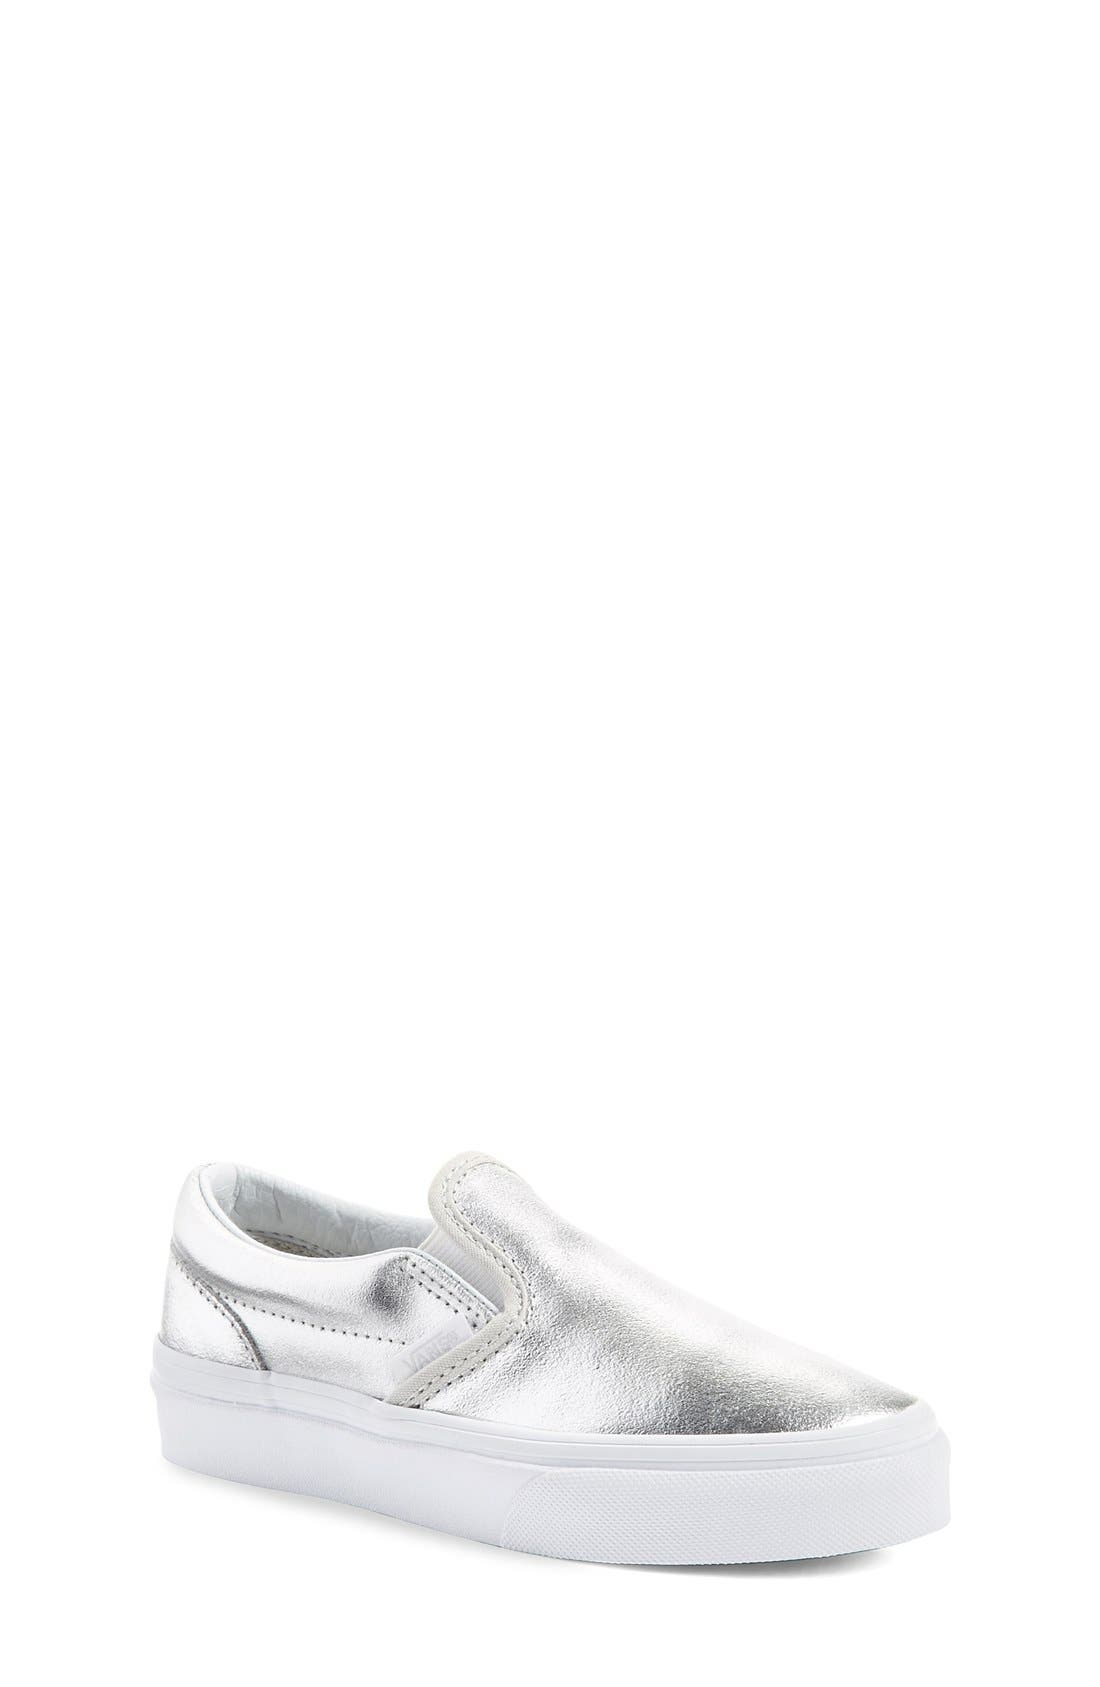 Vans 'Classic - Metallic' Slip-On (Baby, Walker, Toddler, Little Kid & Big Kid)